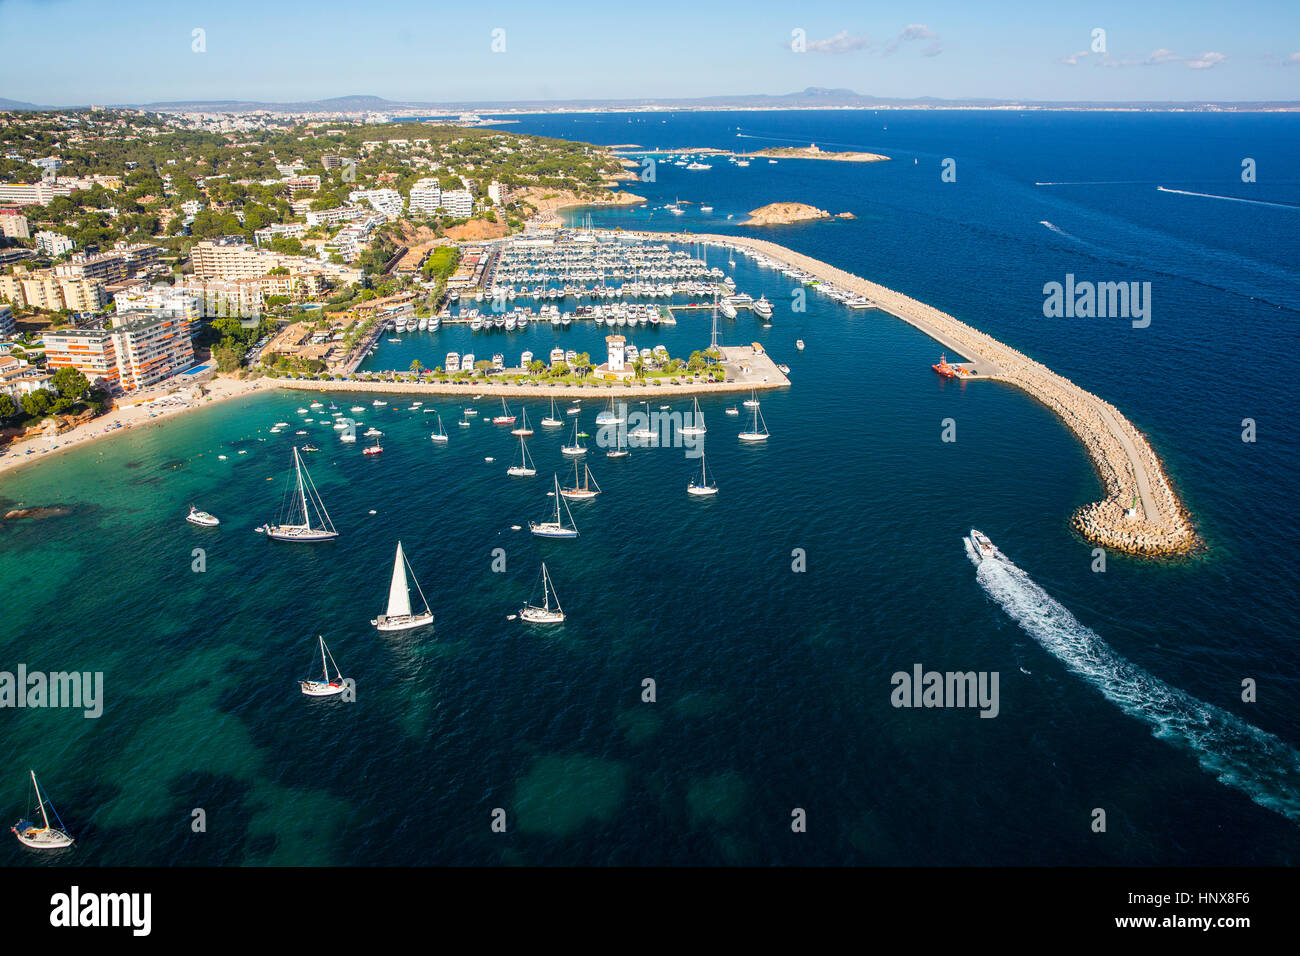 High angle view of yachts anchored on coastline, Majorca, Spain - Stock Image